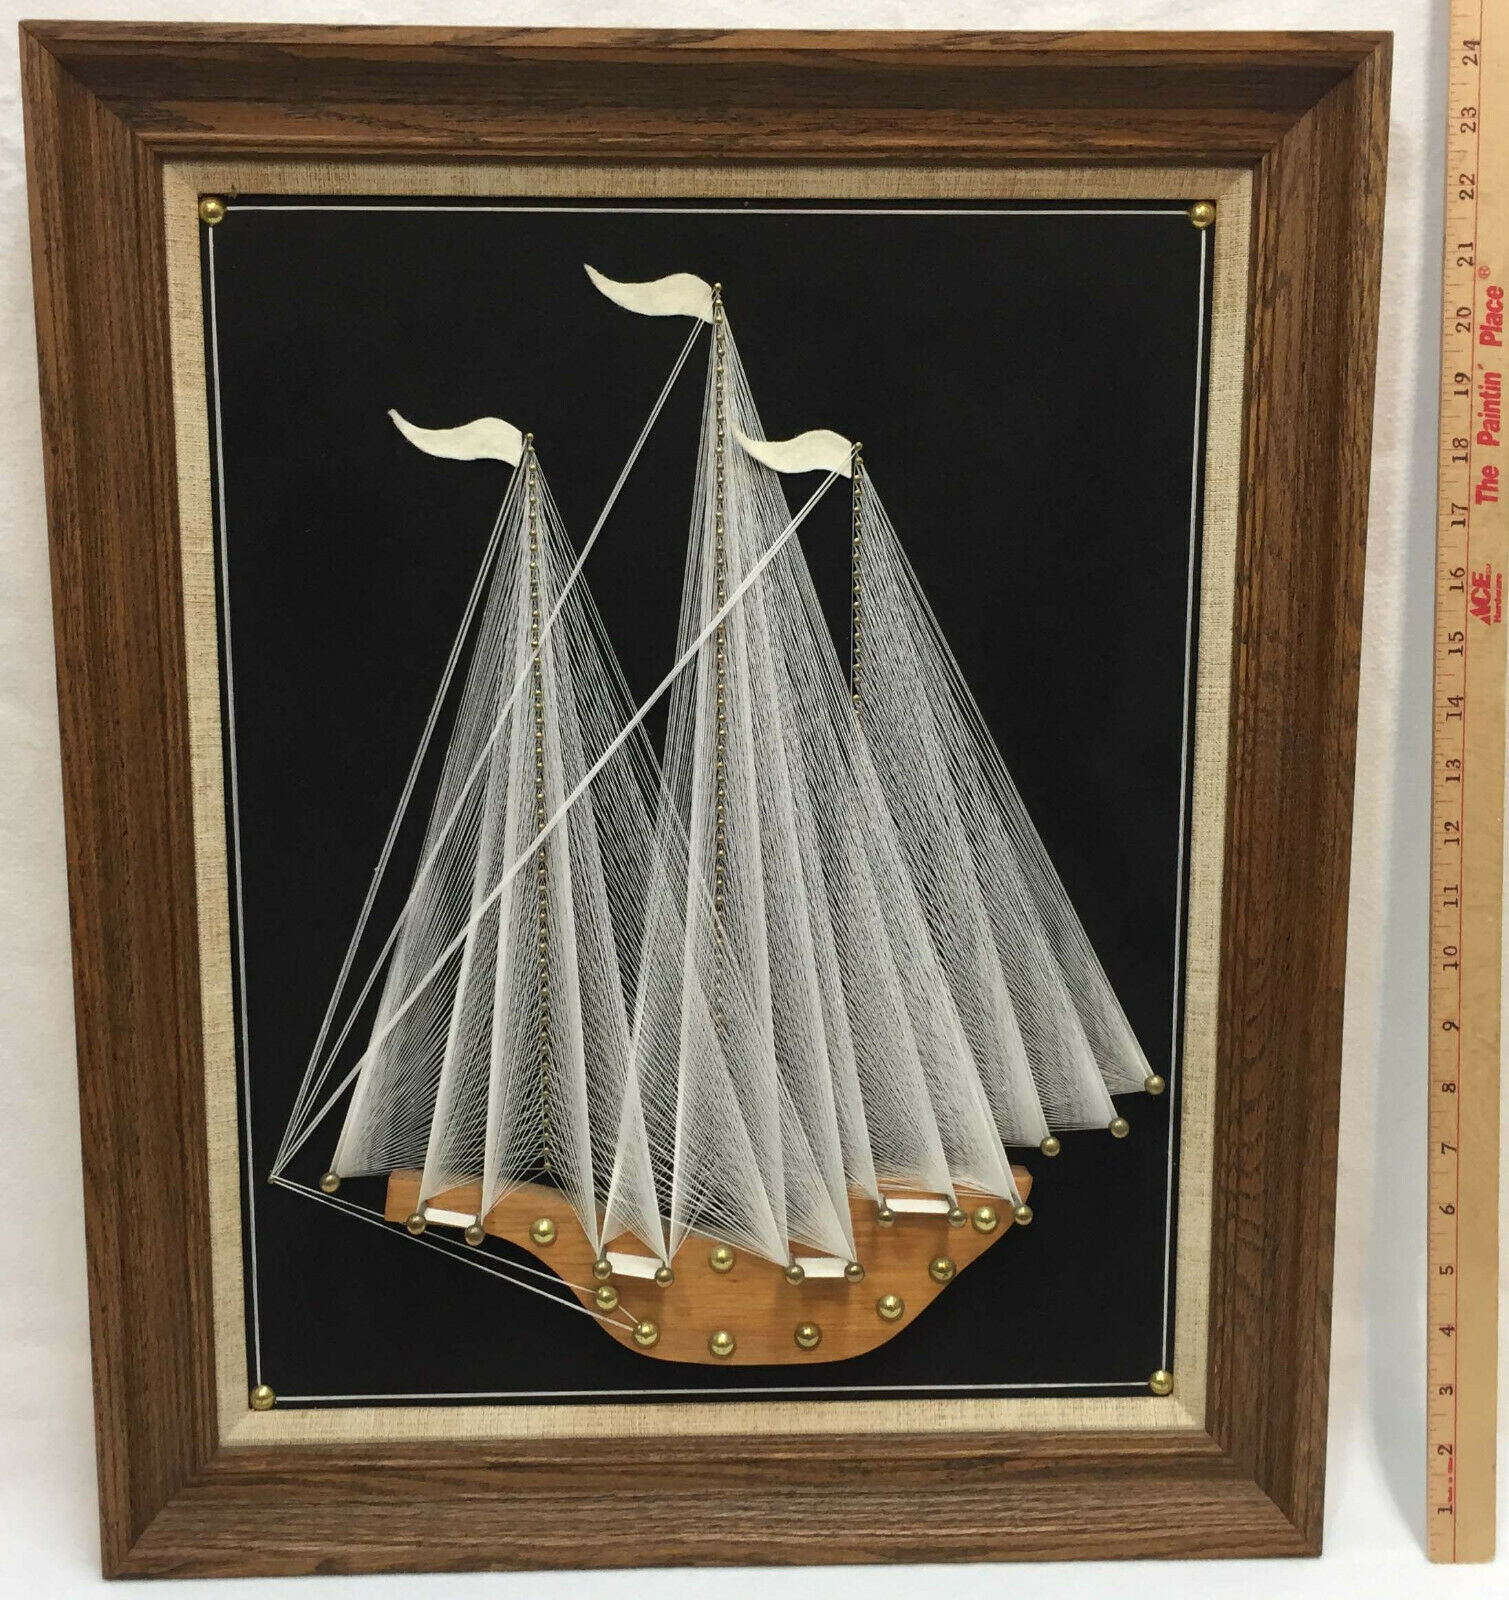 "Sailboat String Art Wall Hanging Picture Framed White Black 24"" Boat Ship 3 Mast"